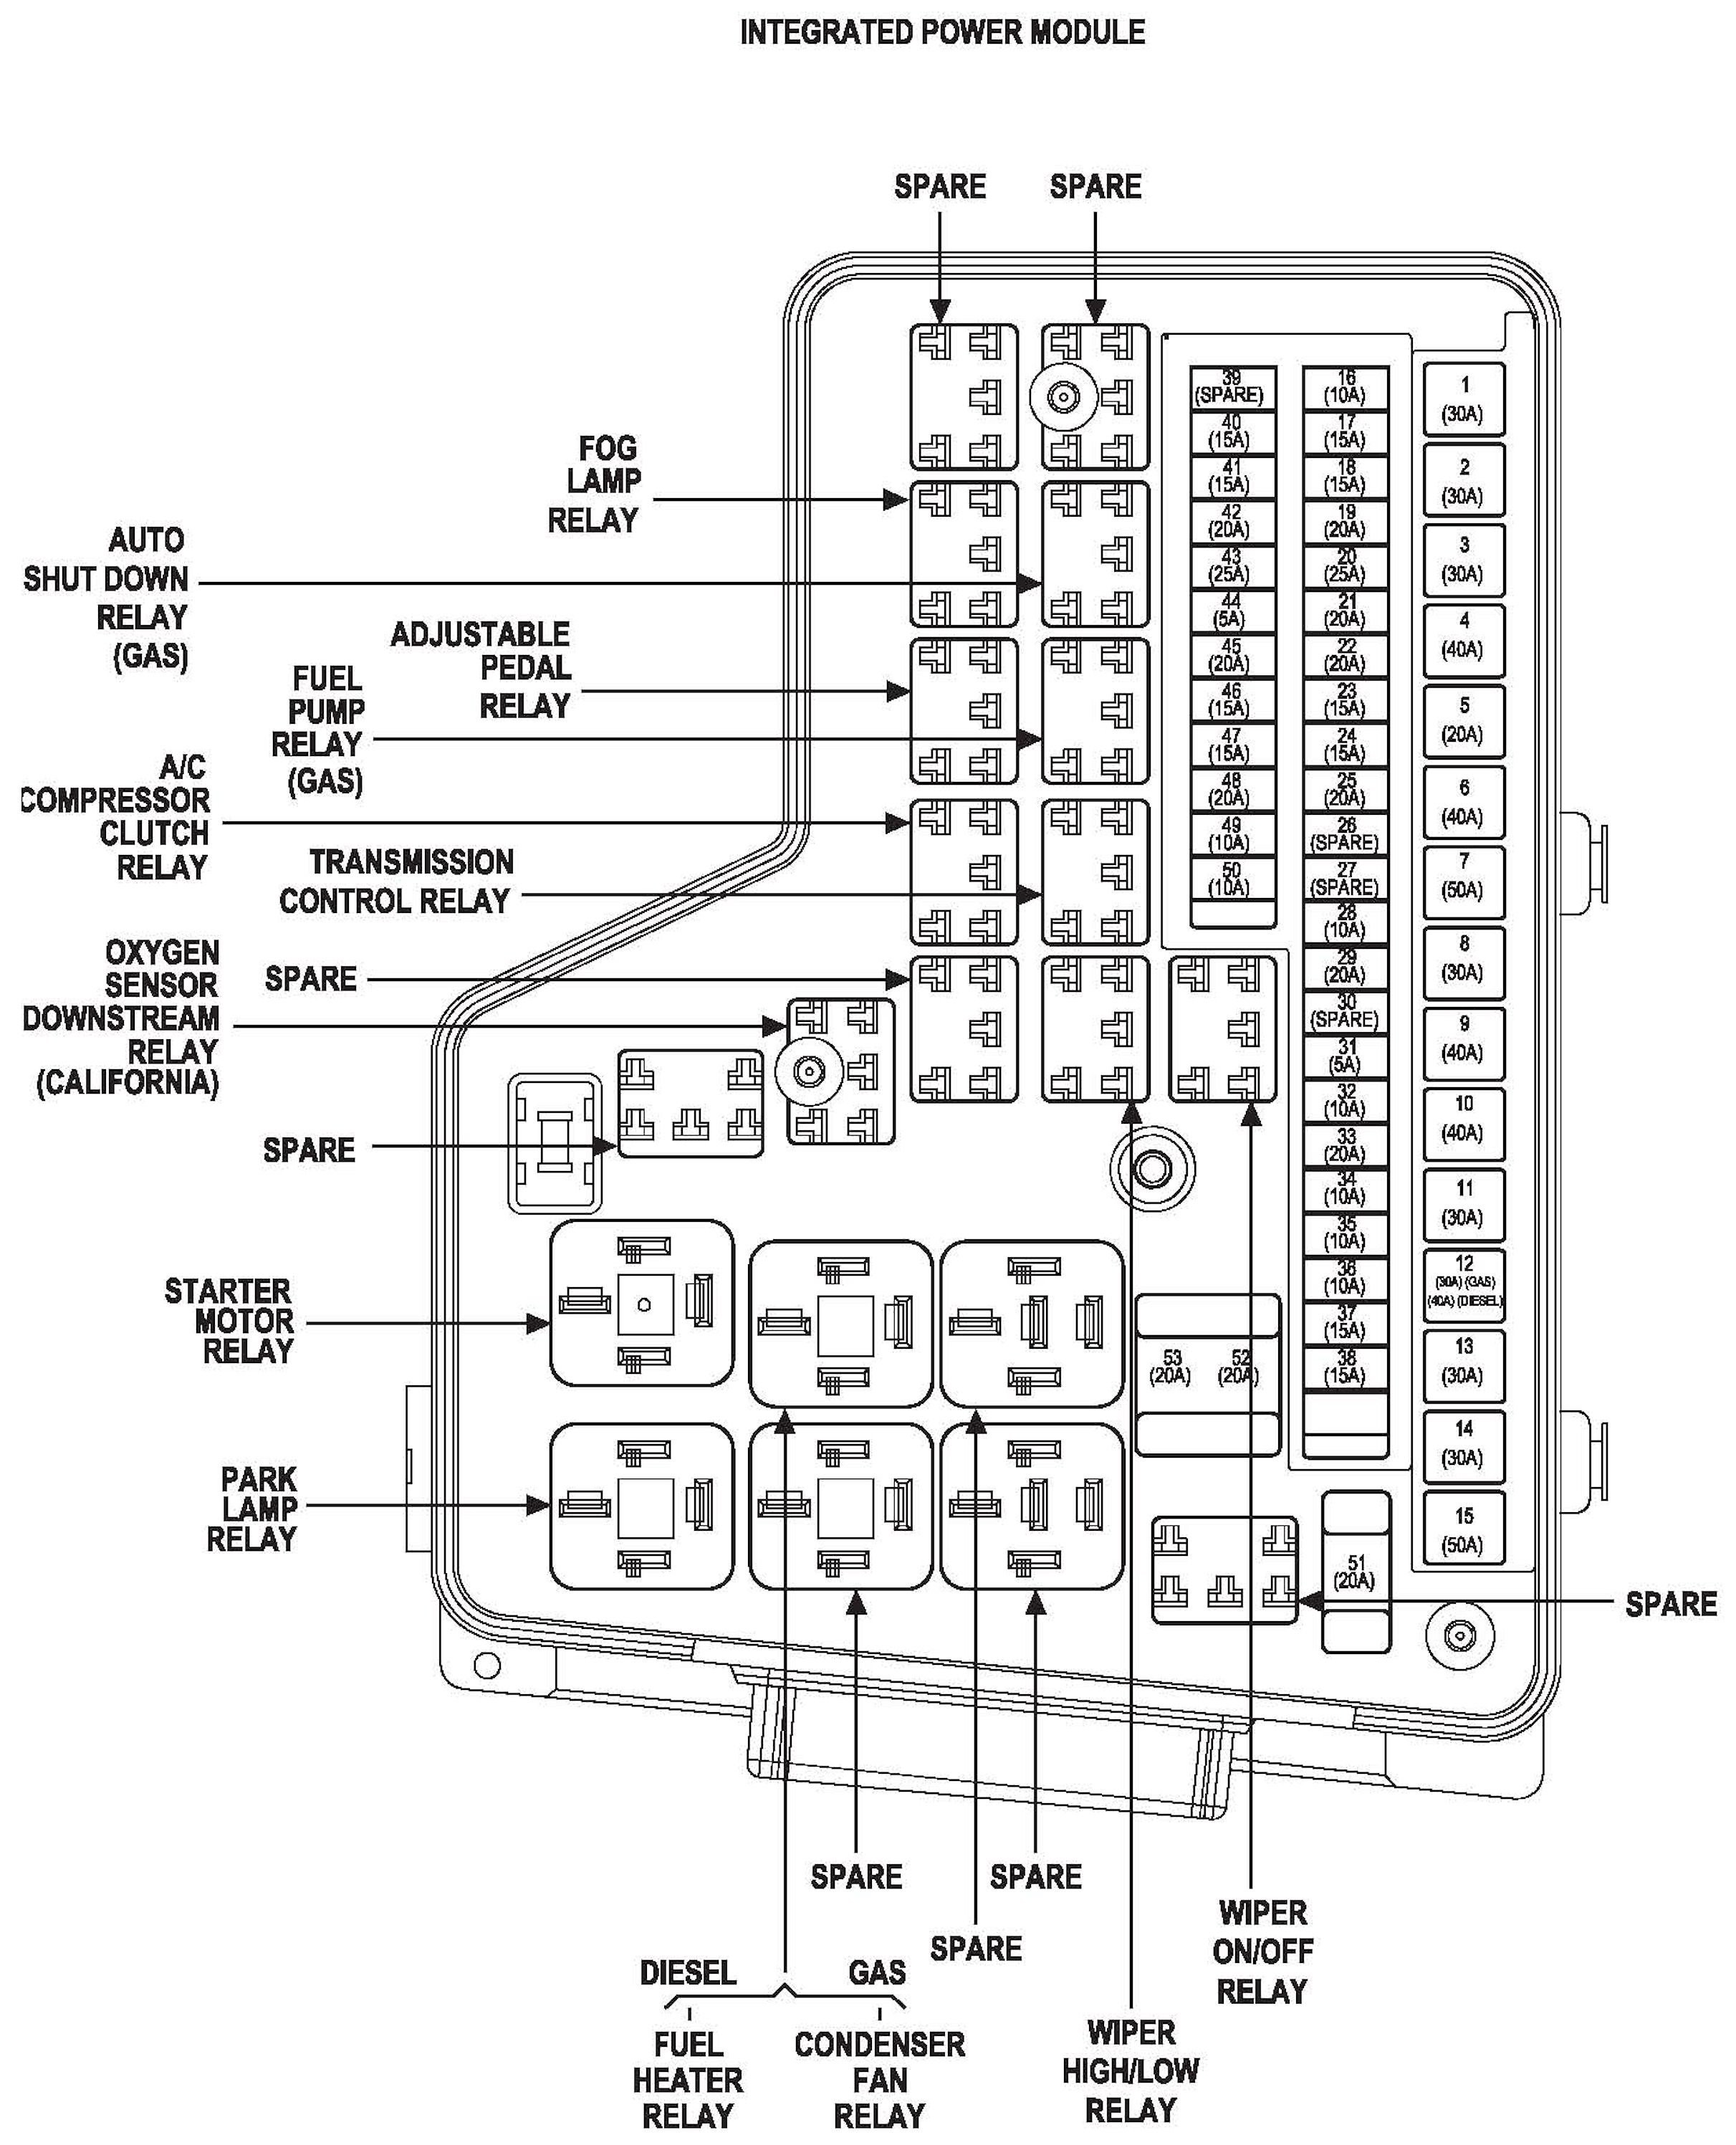 2009 Dodge Ram Interior Fuse Box 1500 Diagram 09 Online Schematic